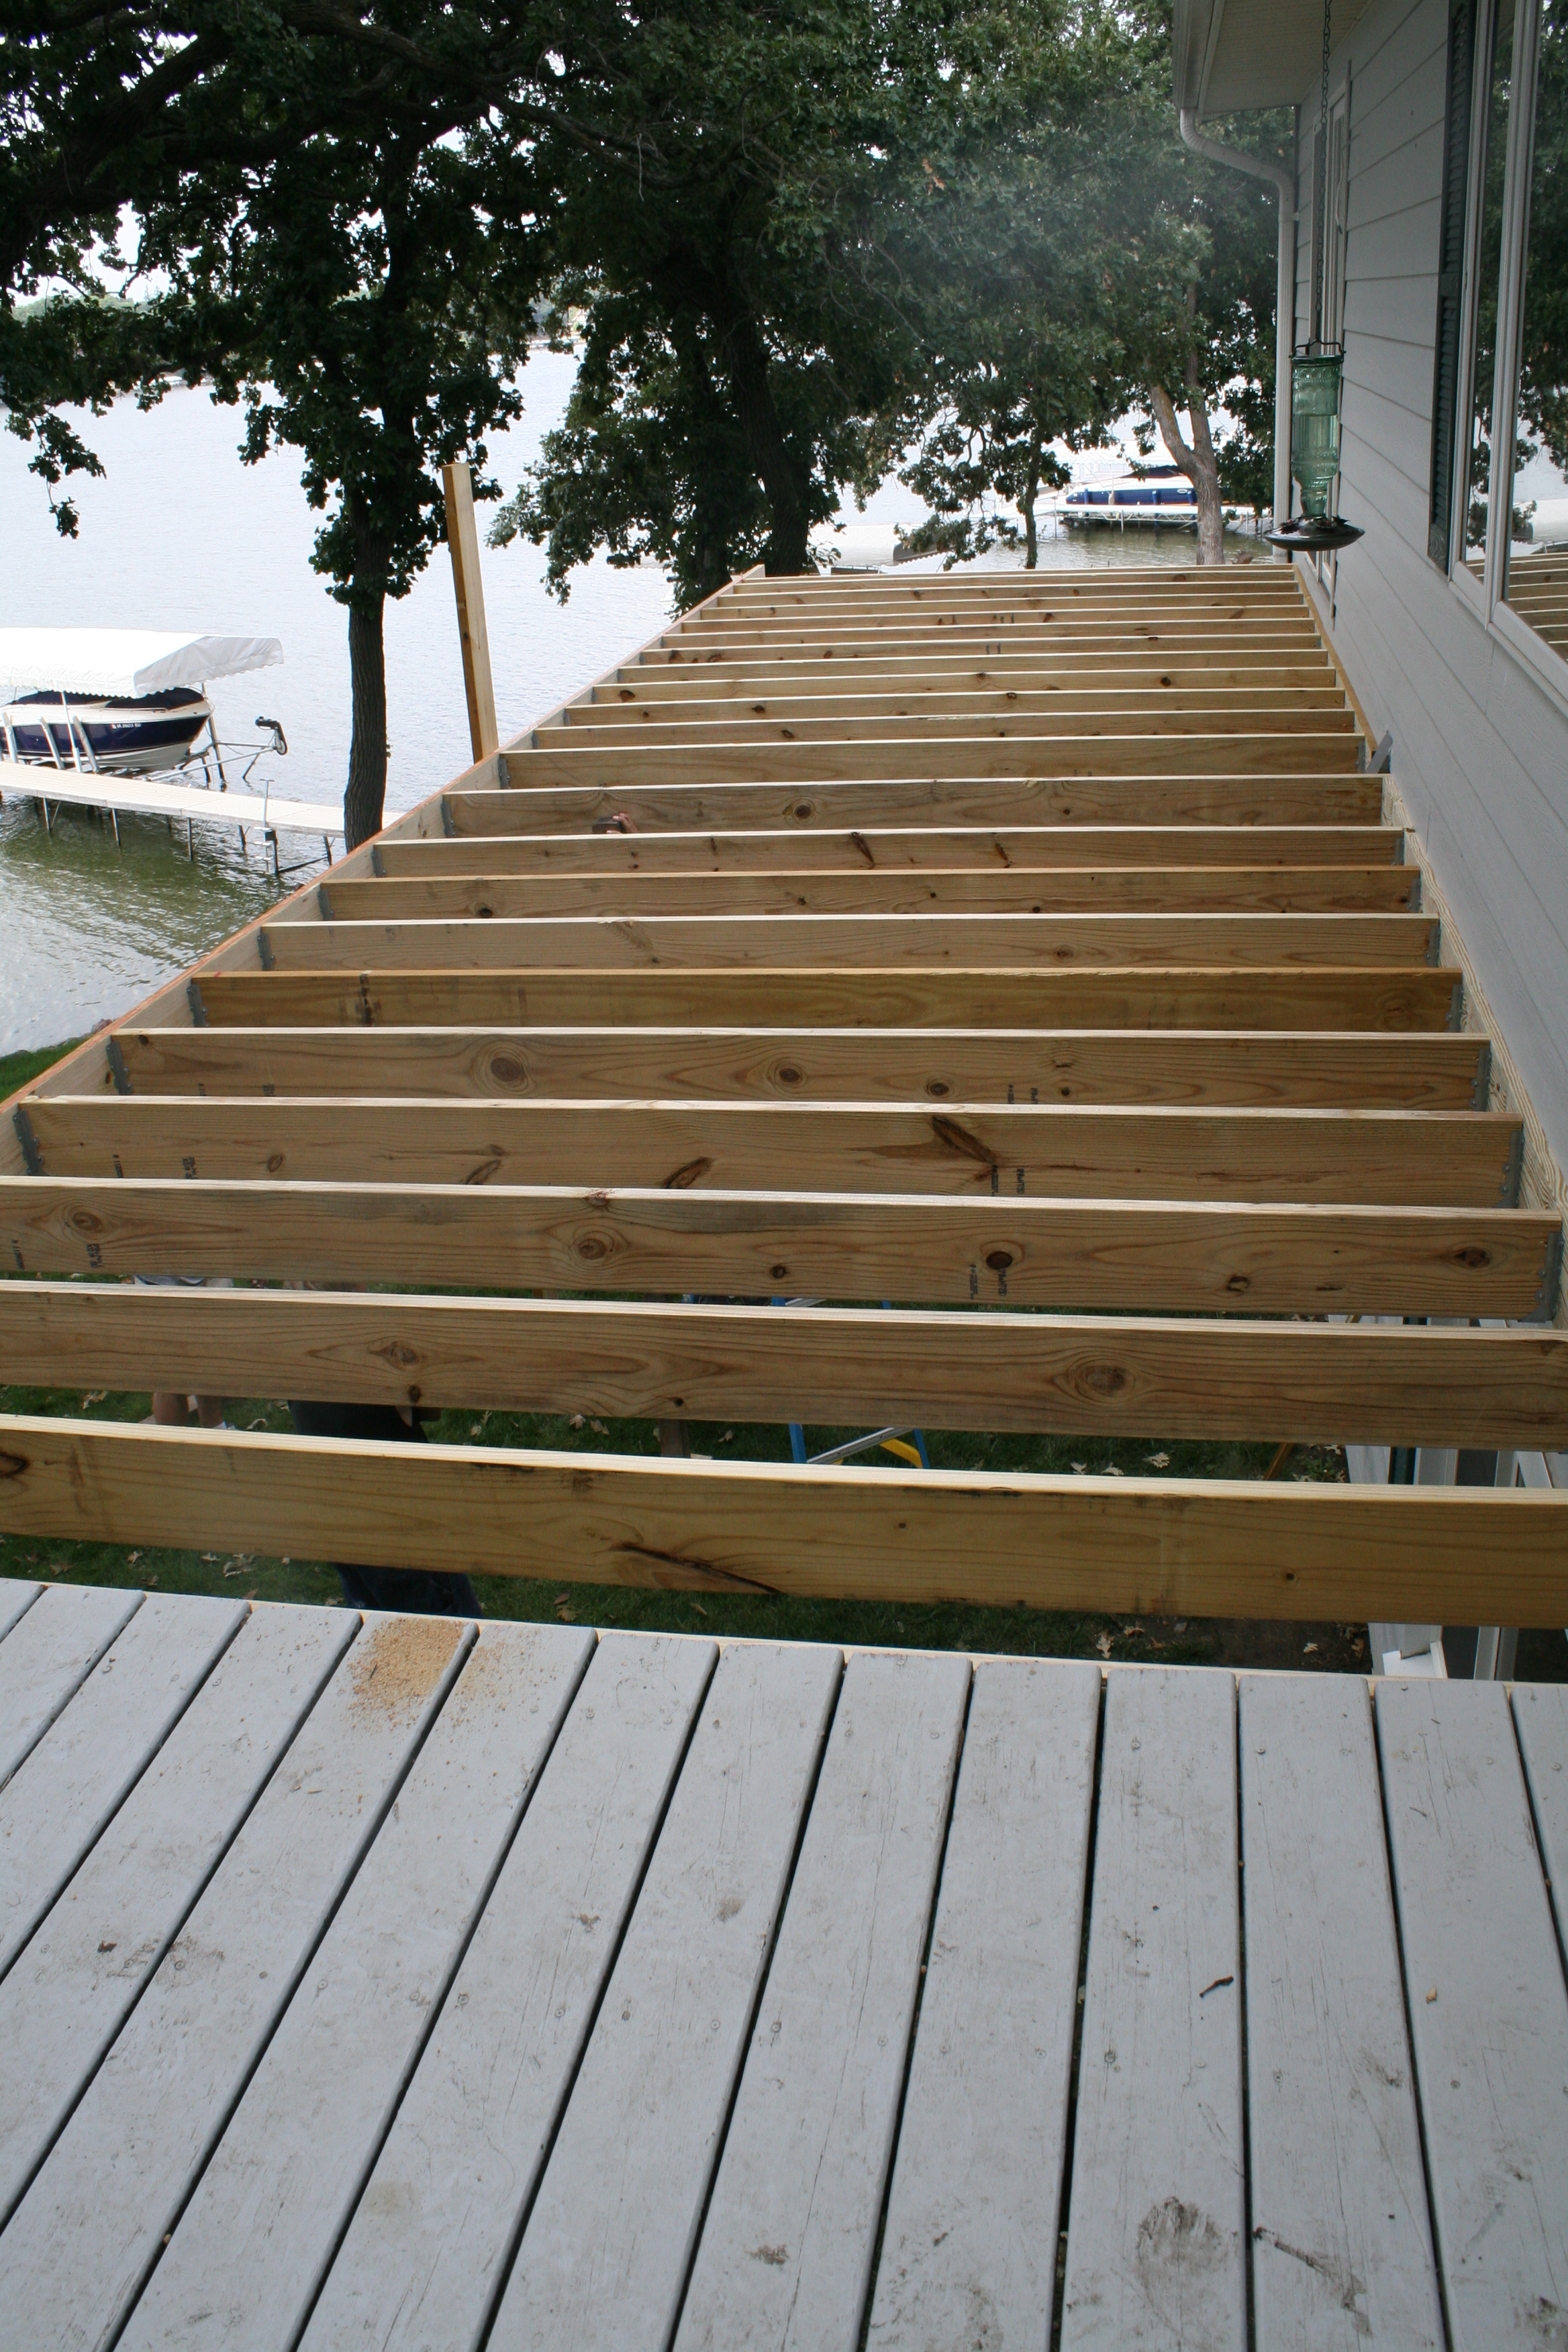 Piece by piece the deck is growing.